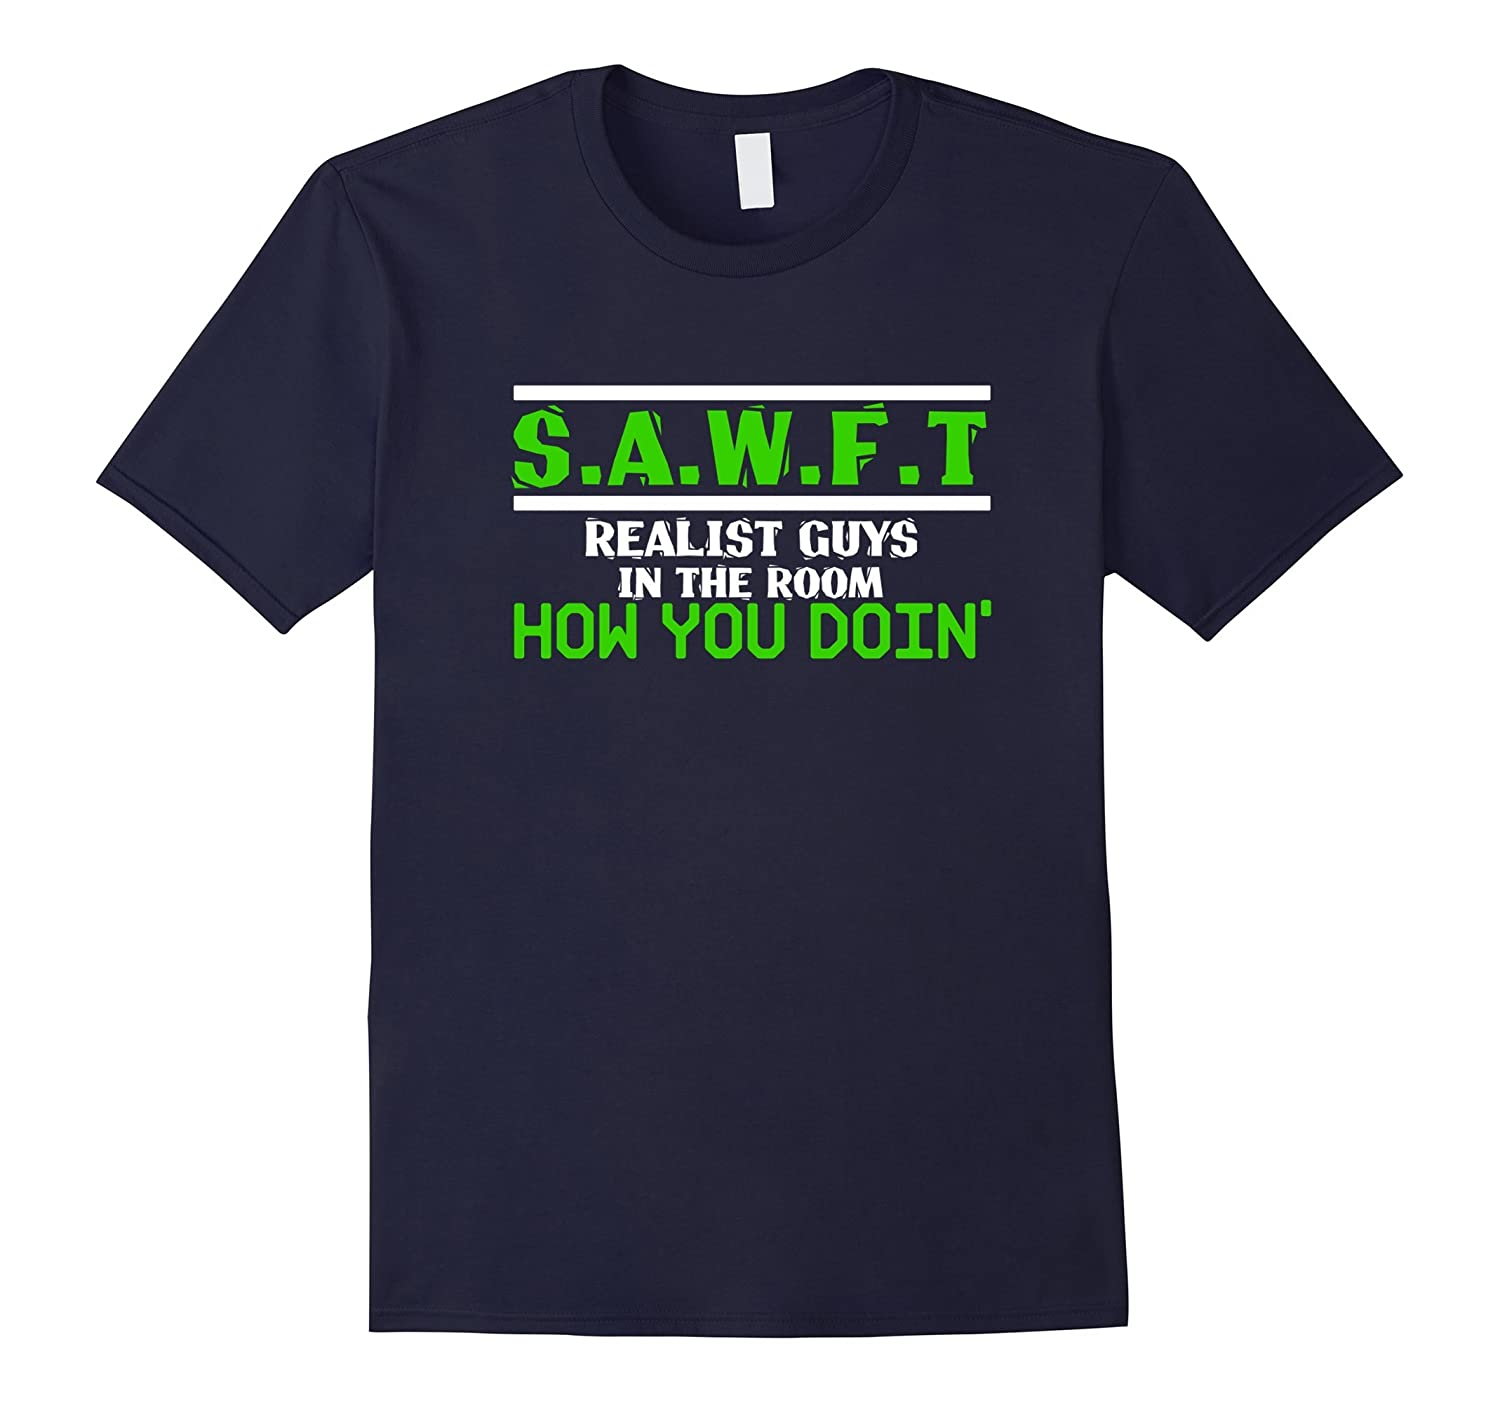 SAWFT Realist guys in the room how you doin' funny t-shirt-BN